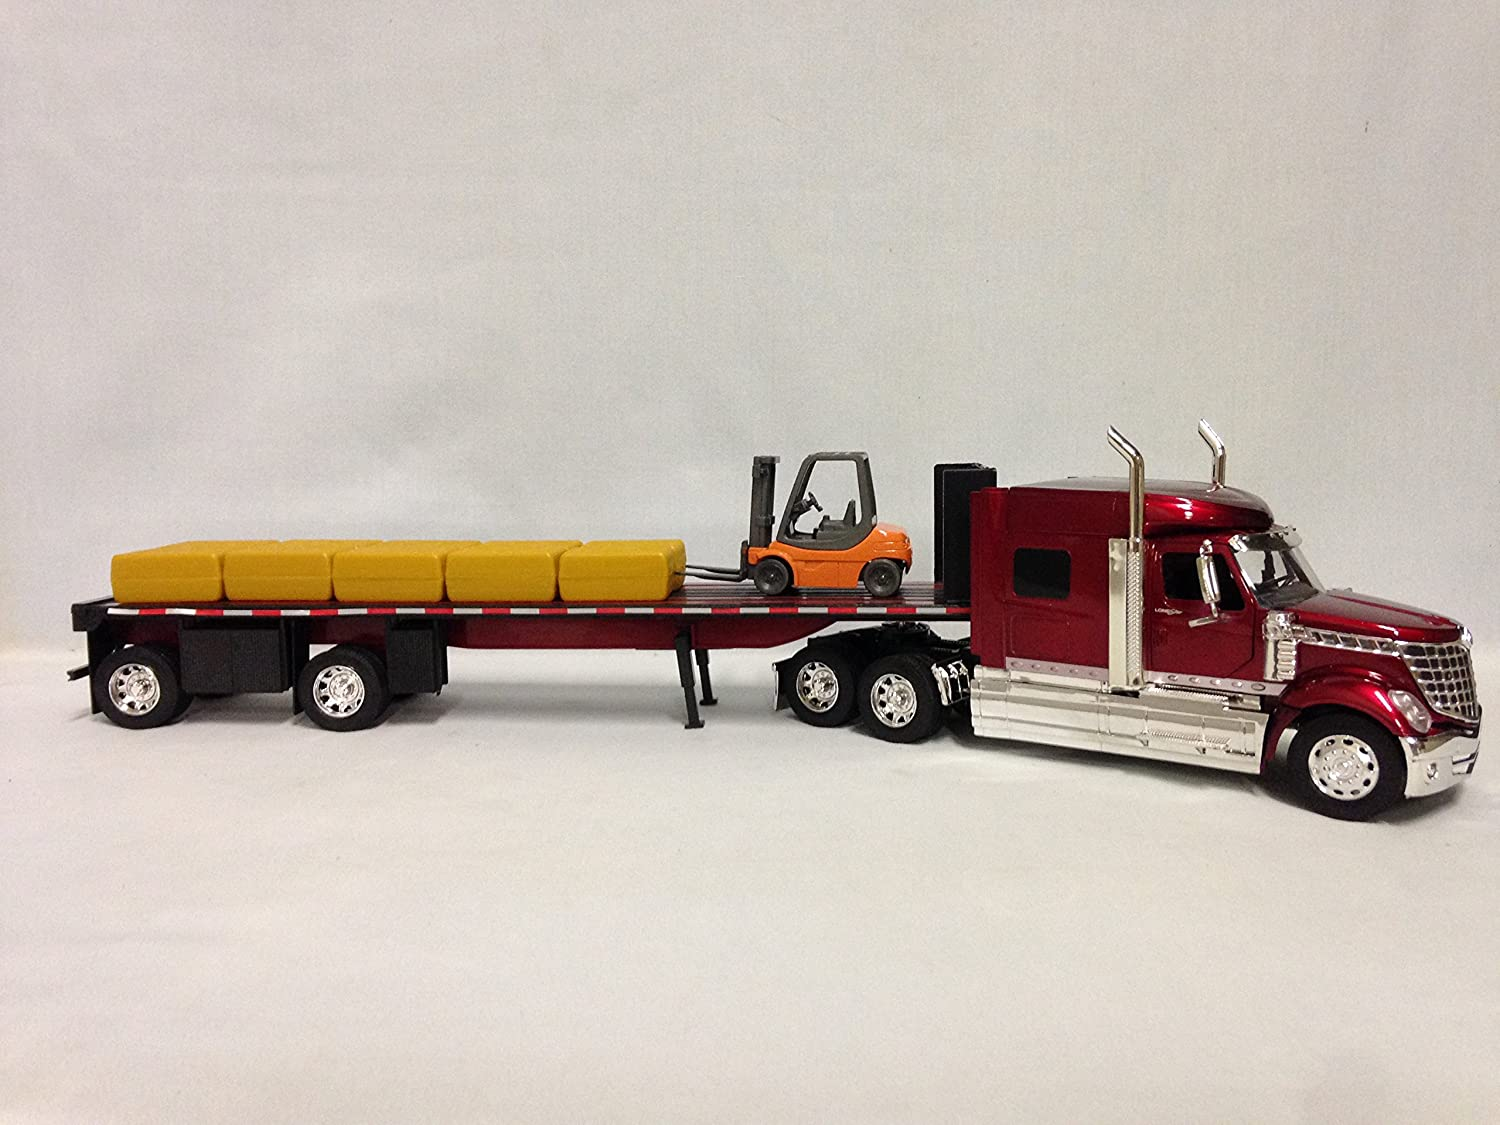 New Ray International Lonestar Flatbed Trailer,with Hay Bales and  Forklift,1:32 Diecas